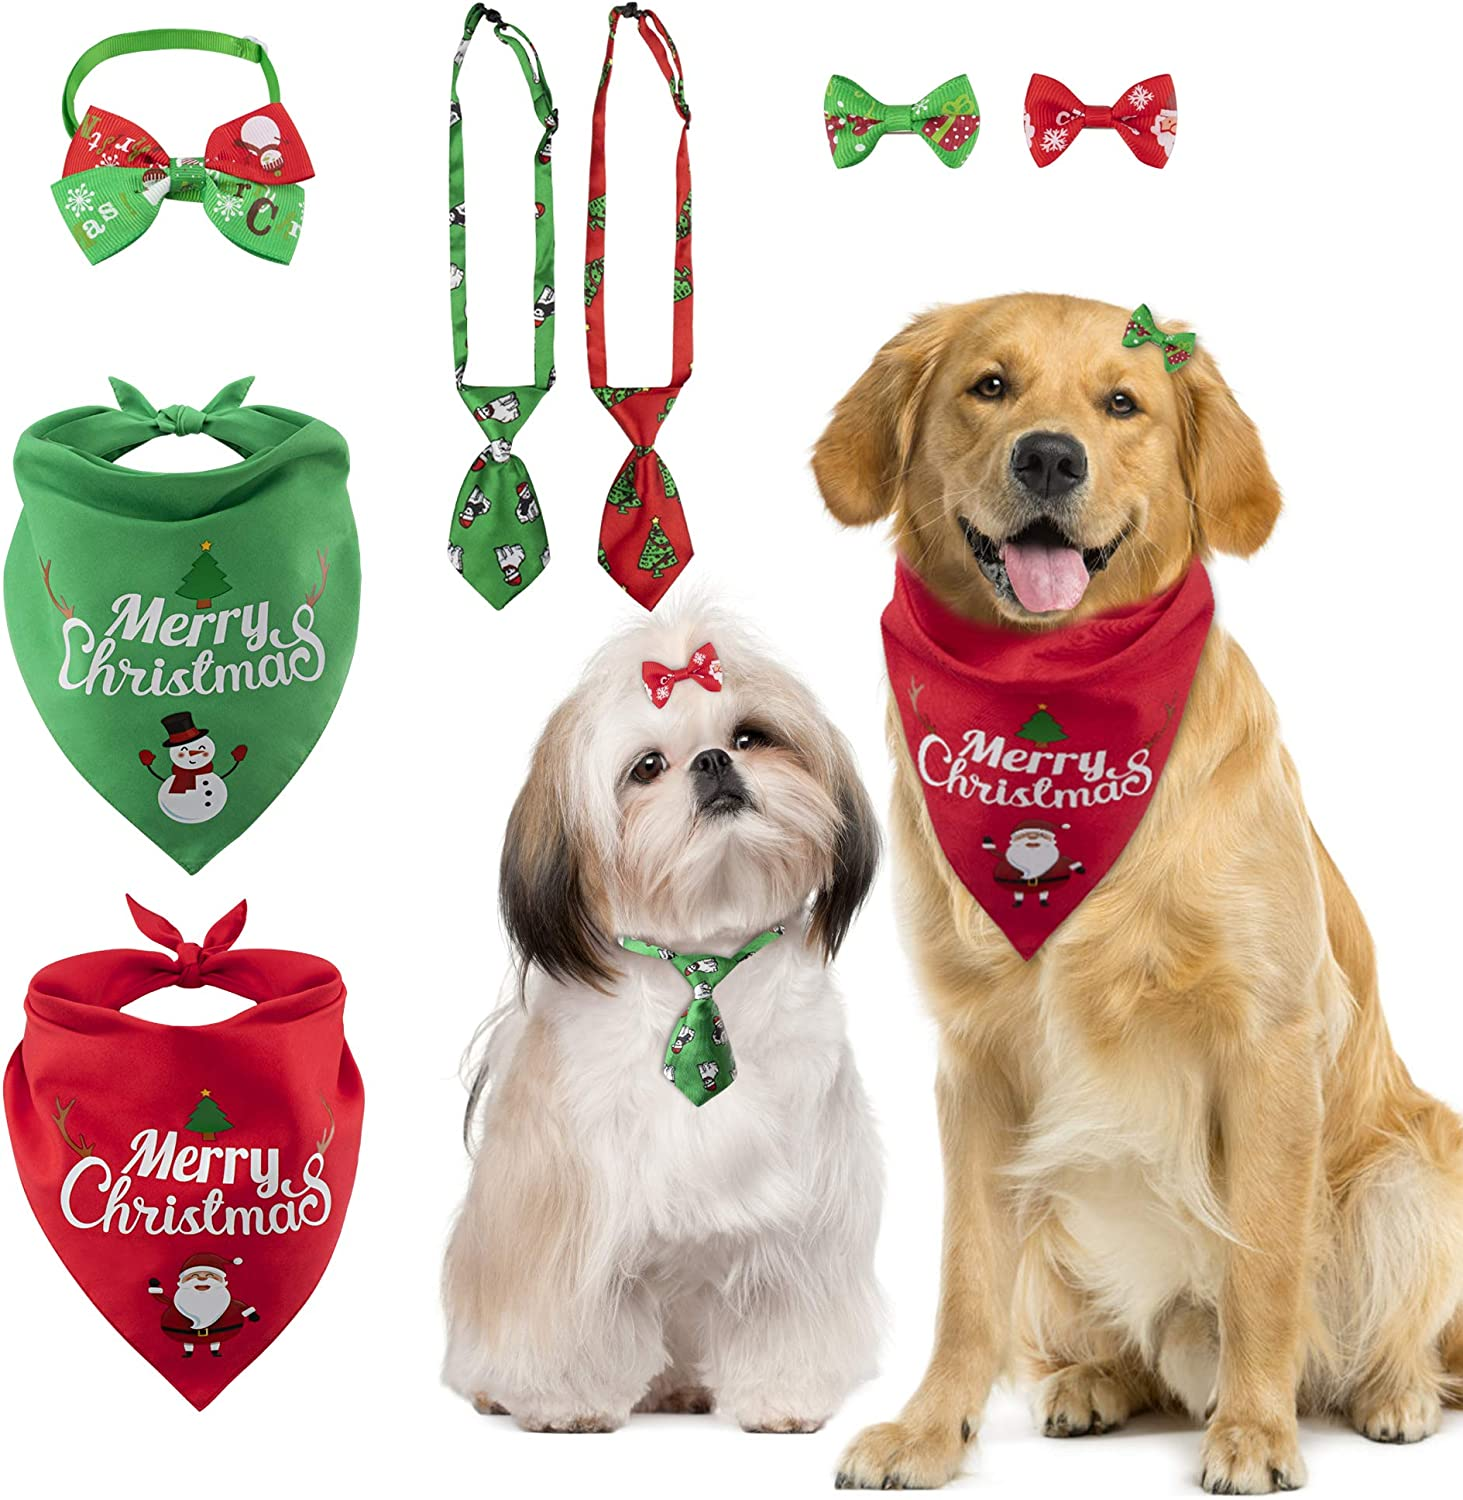 Dog Bow TieChristmas Dog Bow TieBow Ties for DogsDog AccessoriesChristmas Dog AccessoriesUpcycled Dog TiesFREE SHIPPING